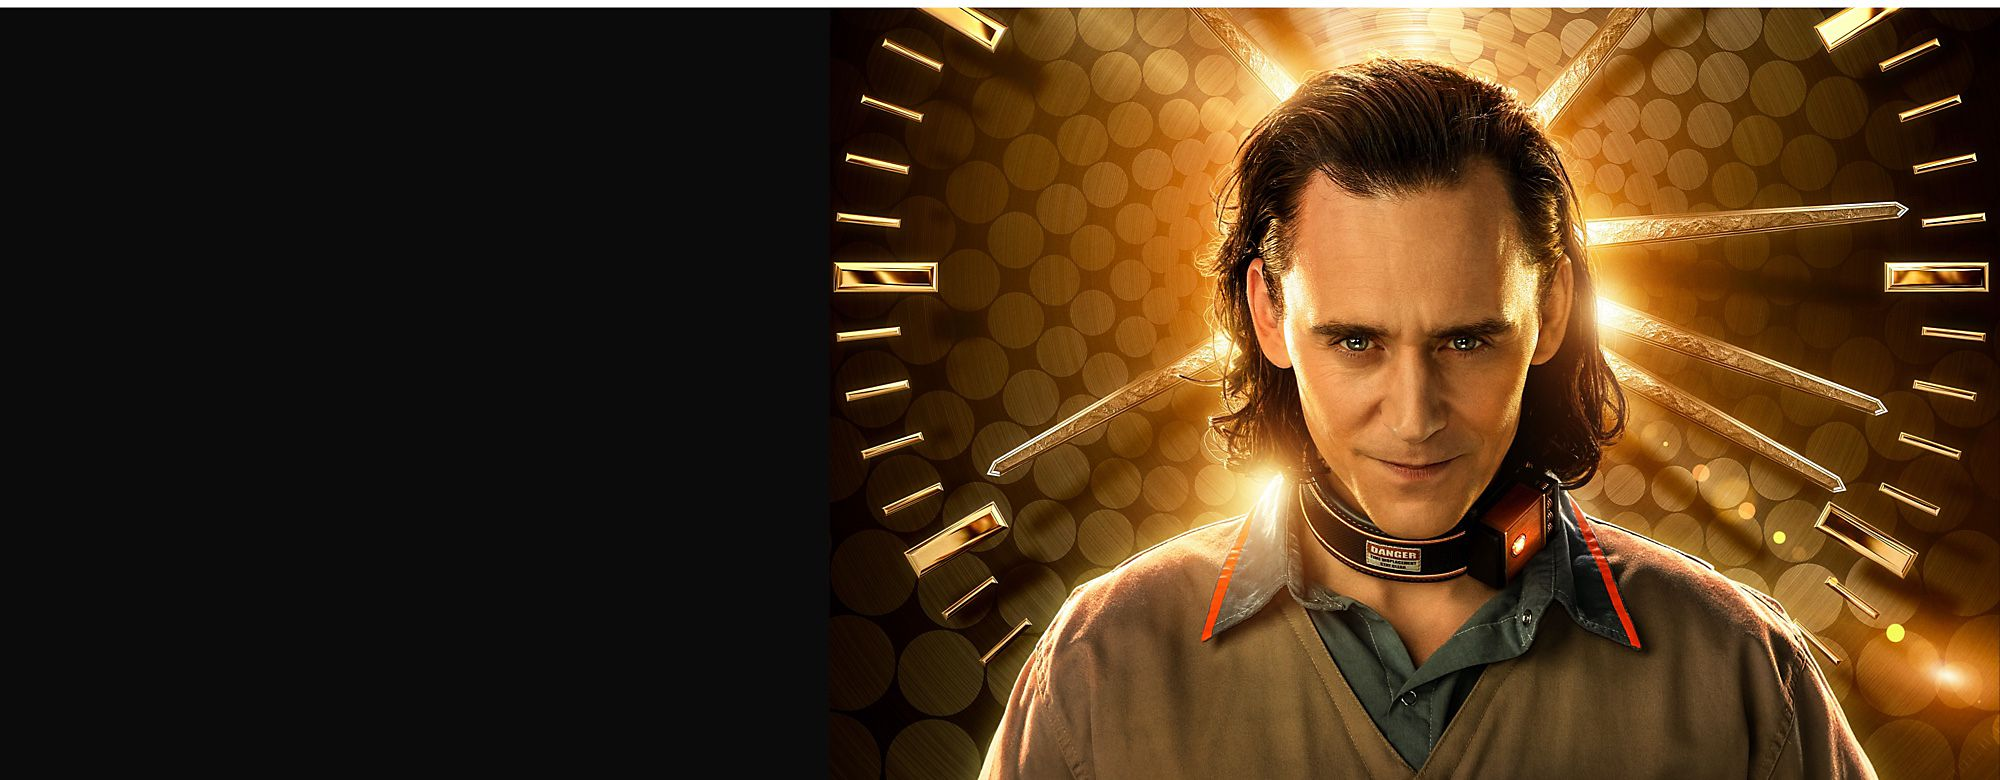 Loki Tom Hiddleston resumes his role as Marvel's greatest trickster in Loki, a brand-new Disney+ Original TV series